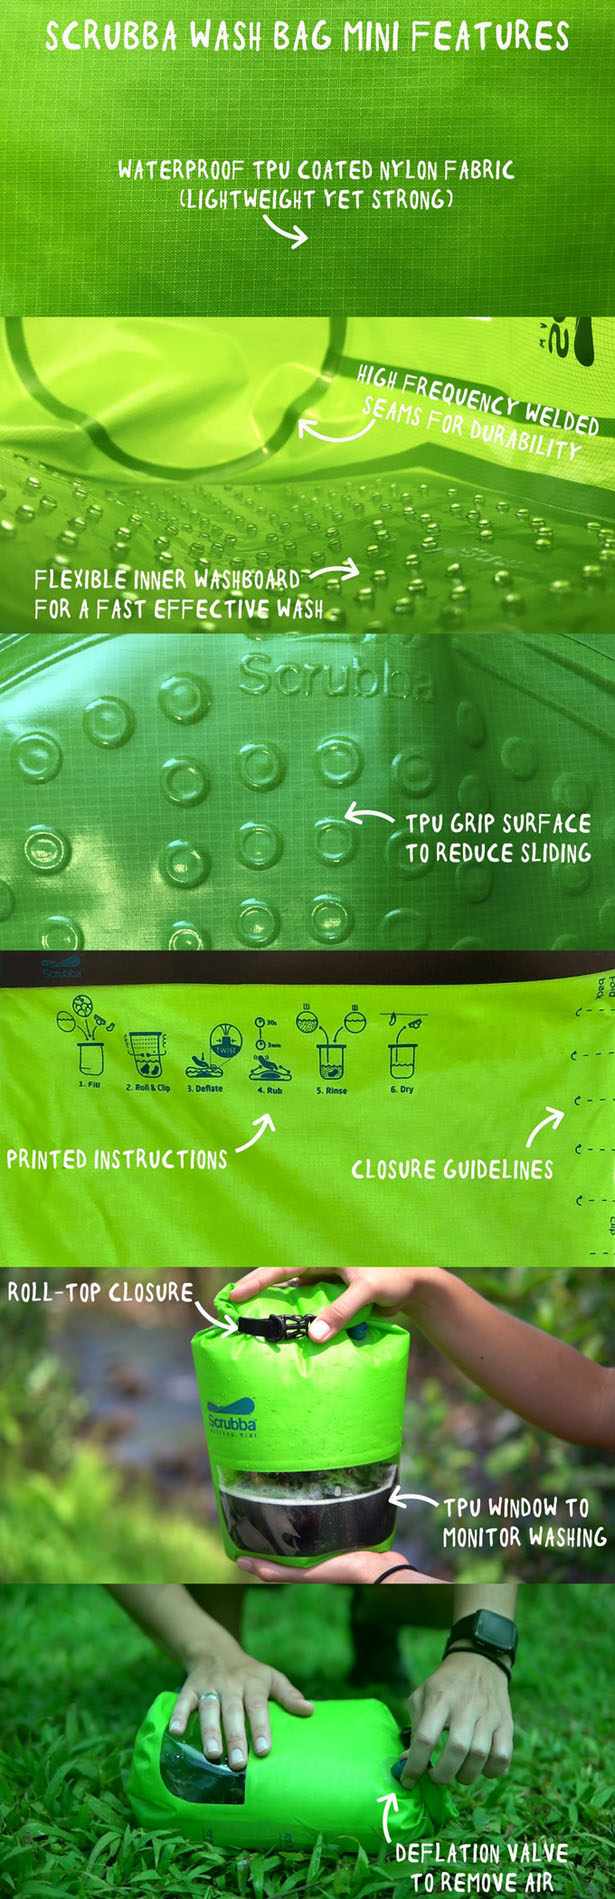 Scrubba Wash Bag MINI is Your Portable Washing Machine While Traveling